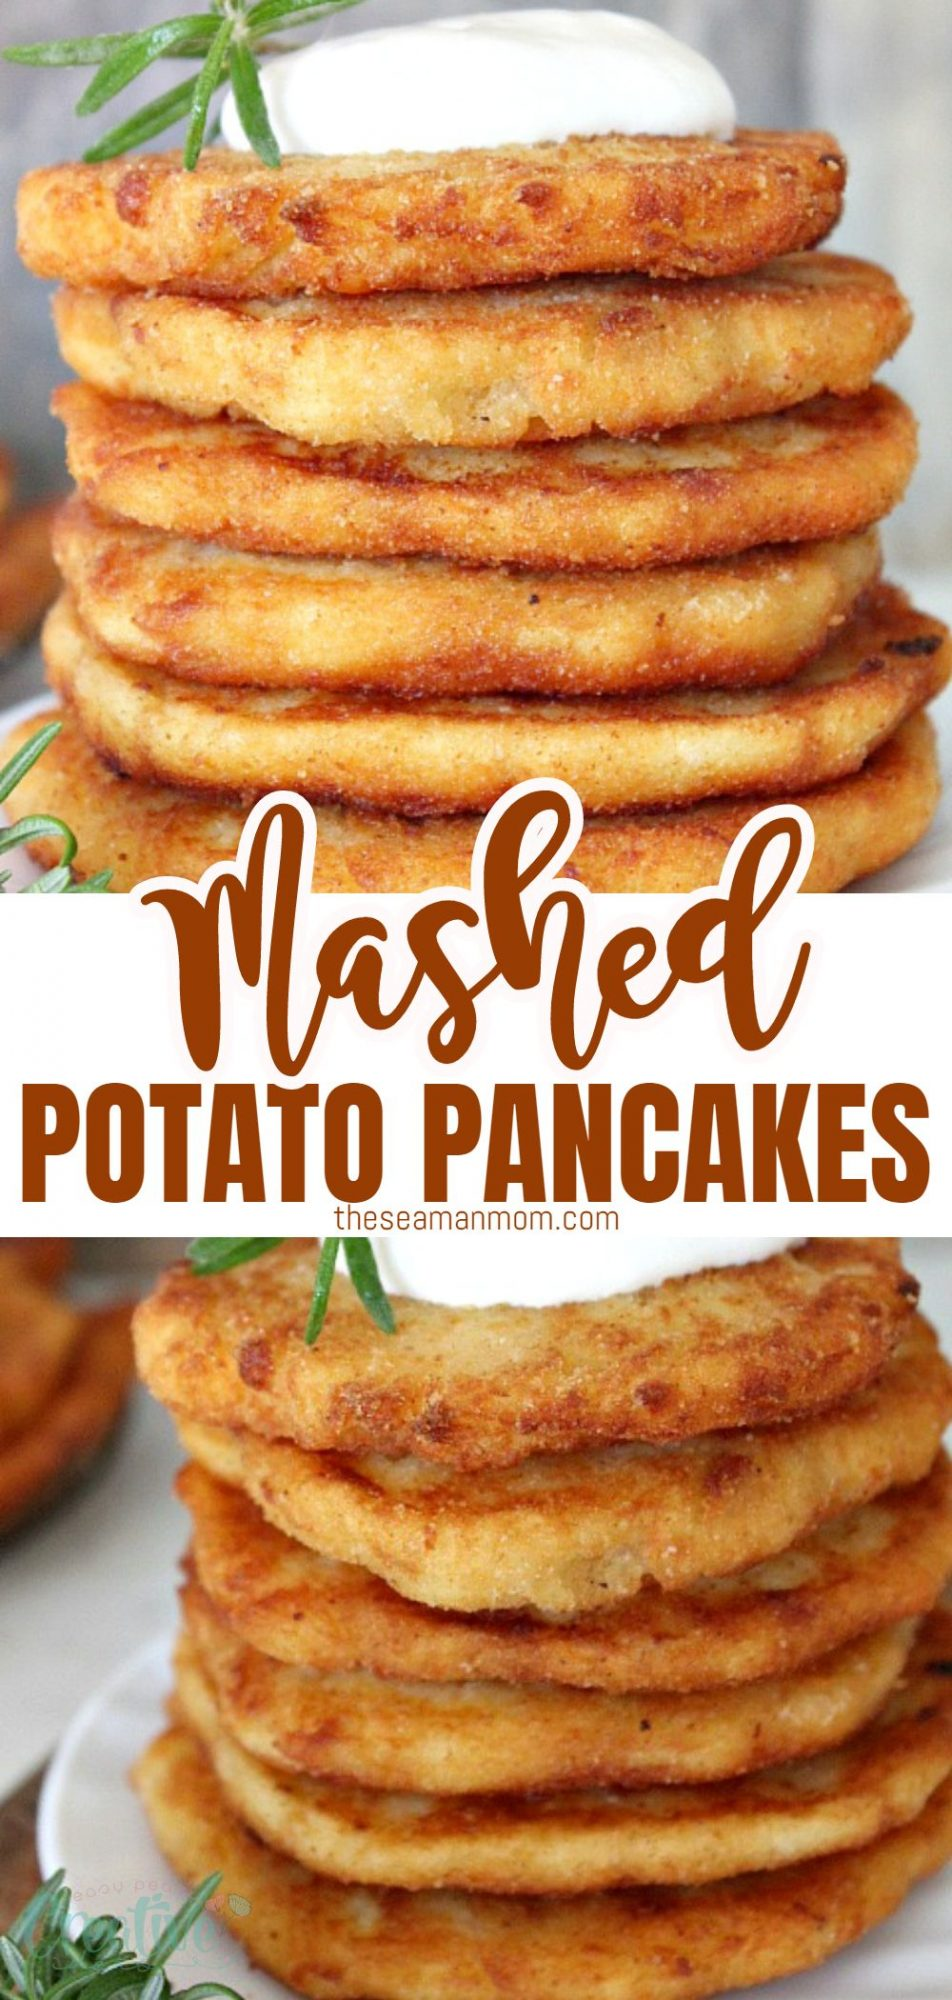 Photo collage of a stack of mashed potato pancakes